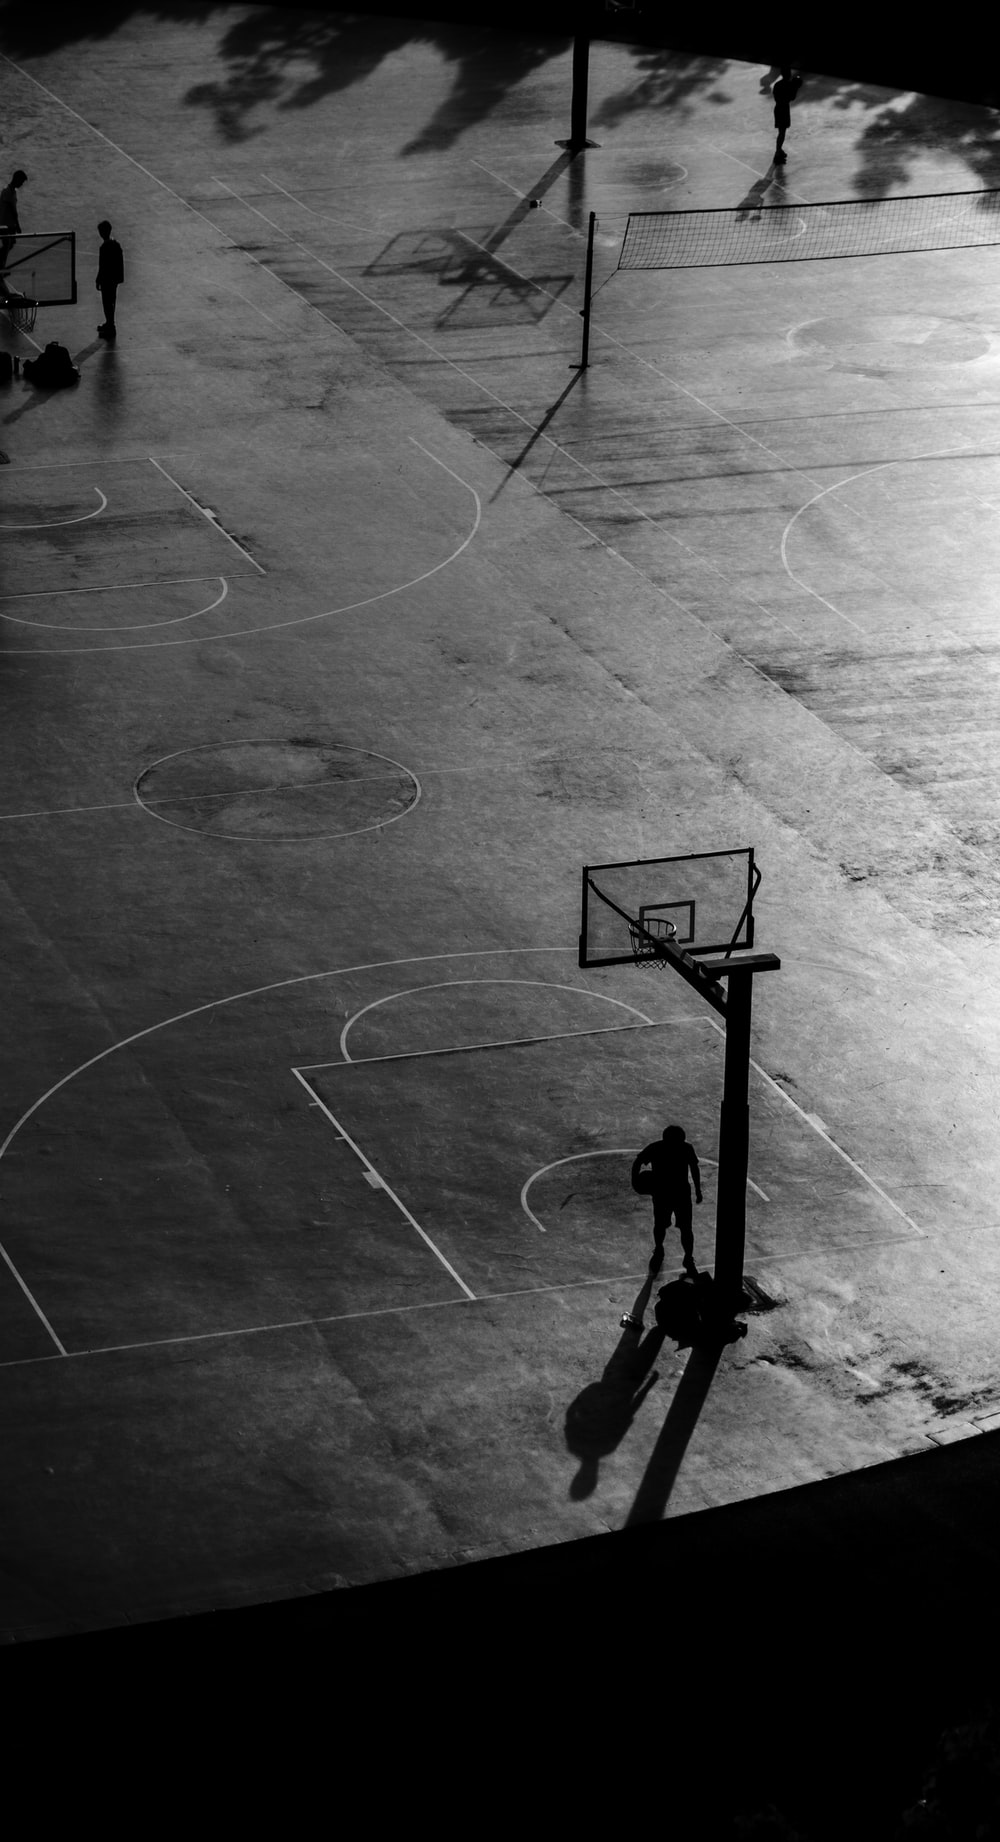 person walking on basketball court